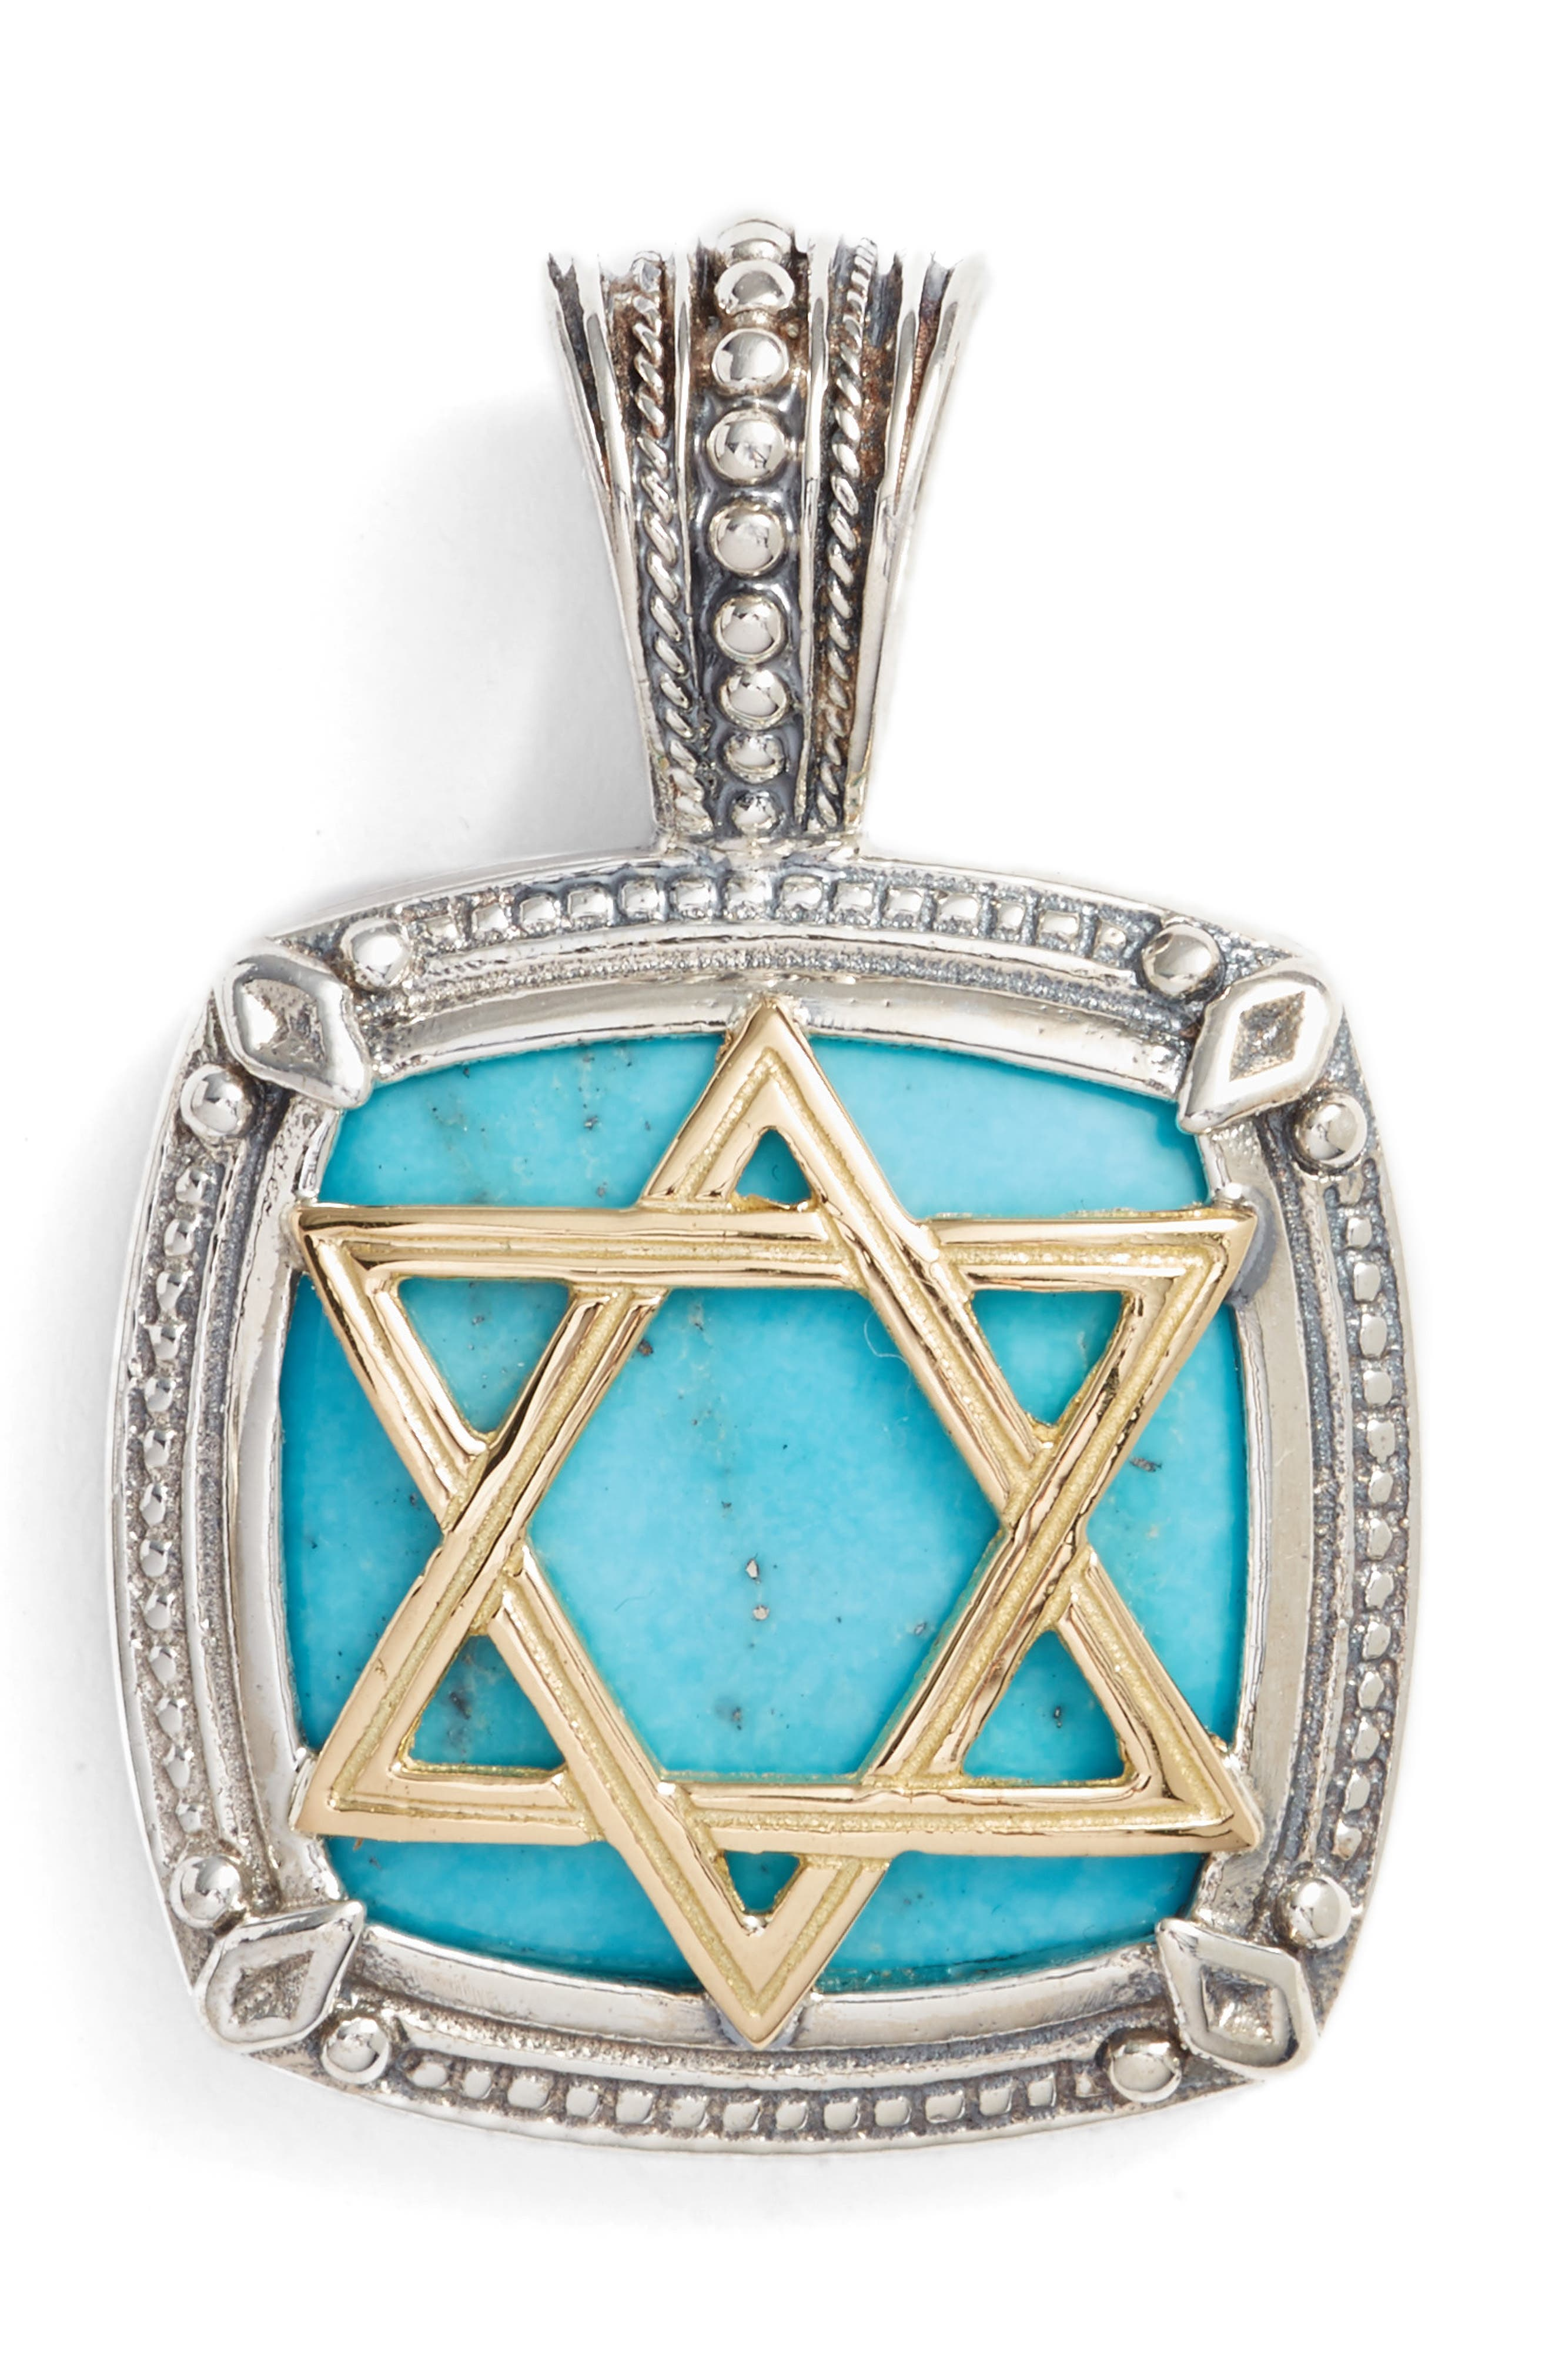 Heonos Star of David Turquoise Pendant,                             Main thumbnail 1, color,                             SILVER/ GOLD/ TURQUOISE